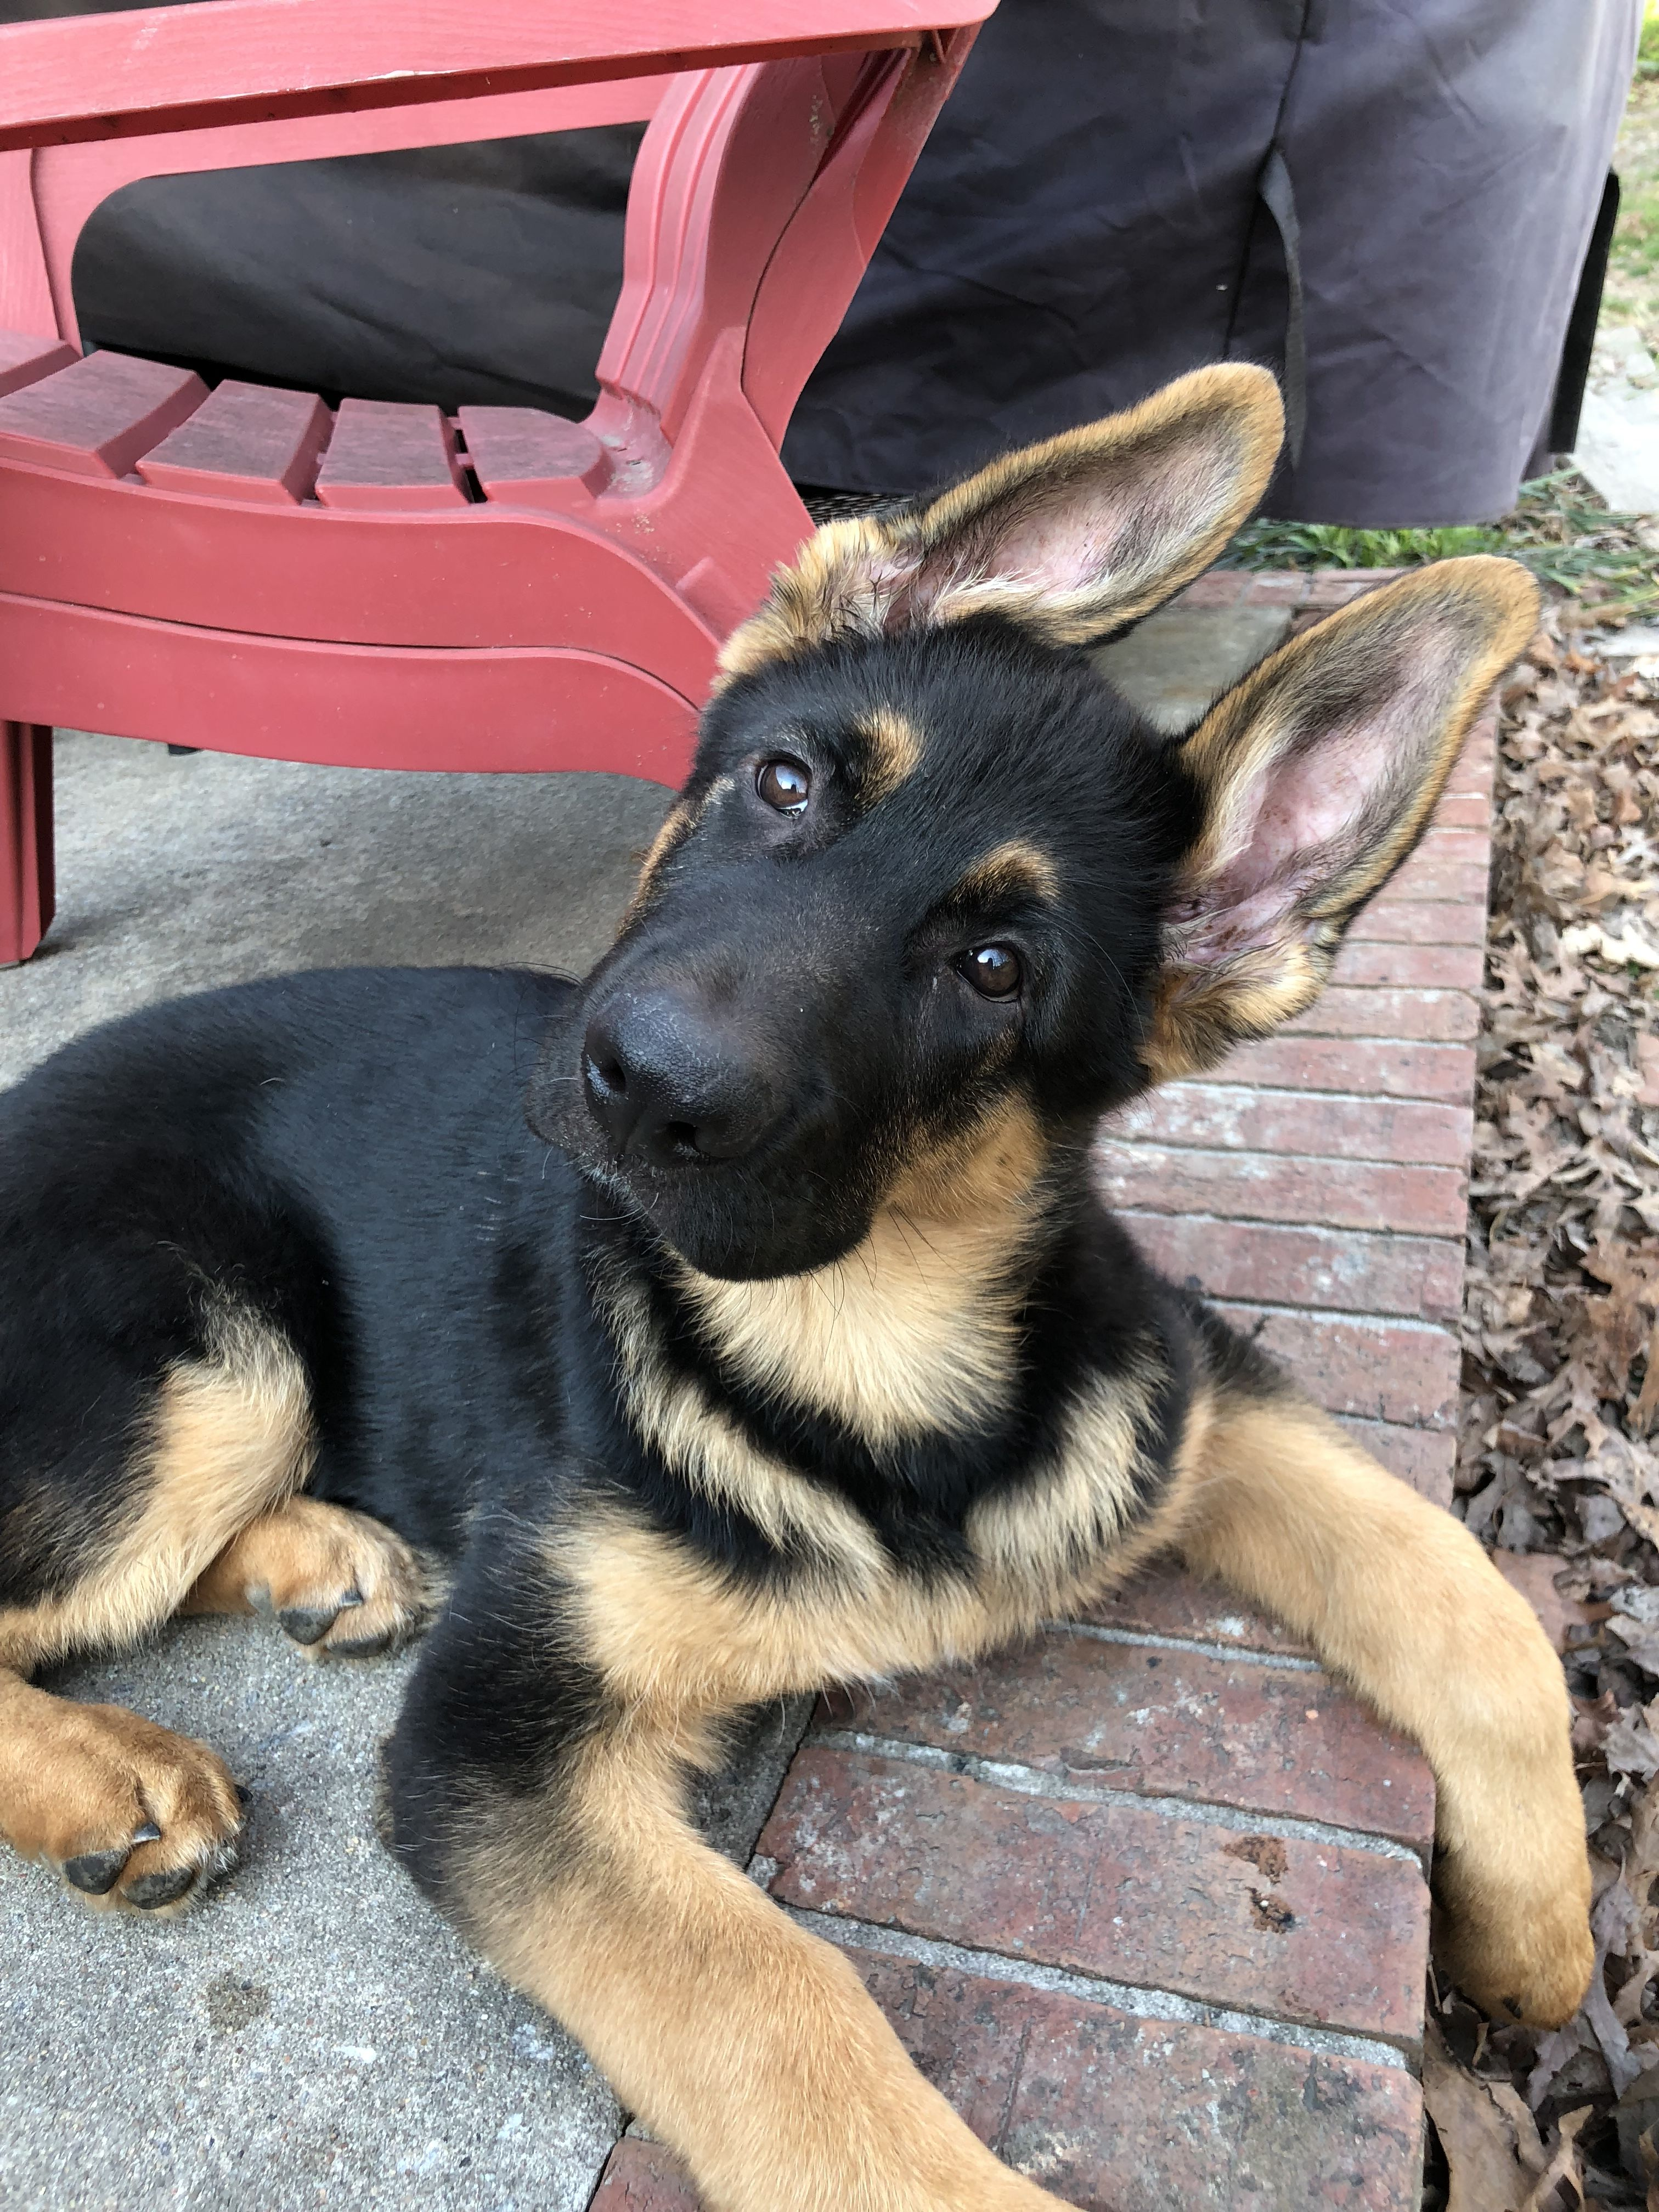 Gsd Puppy Dogs Cute Animals Puppies